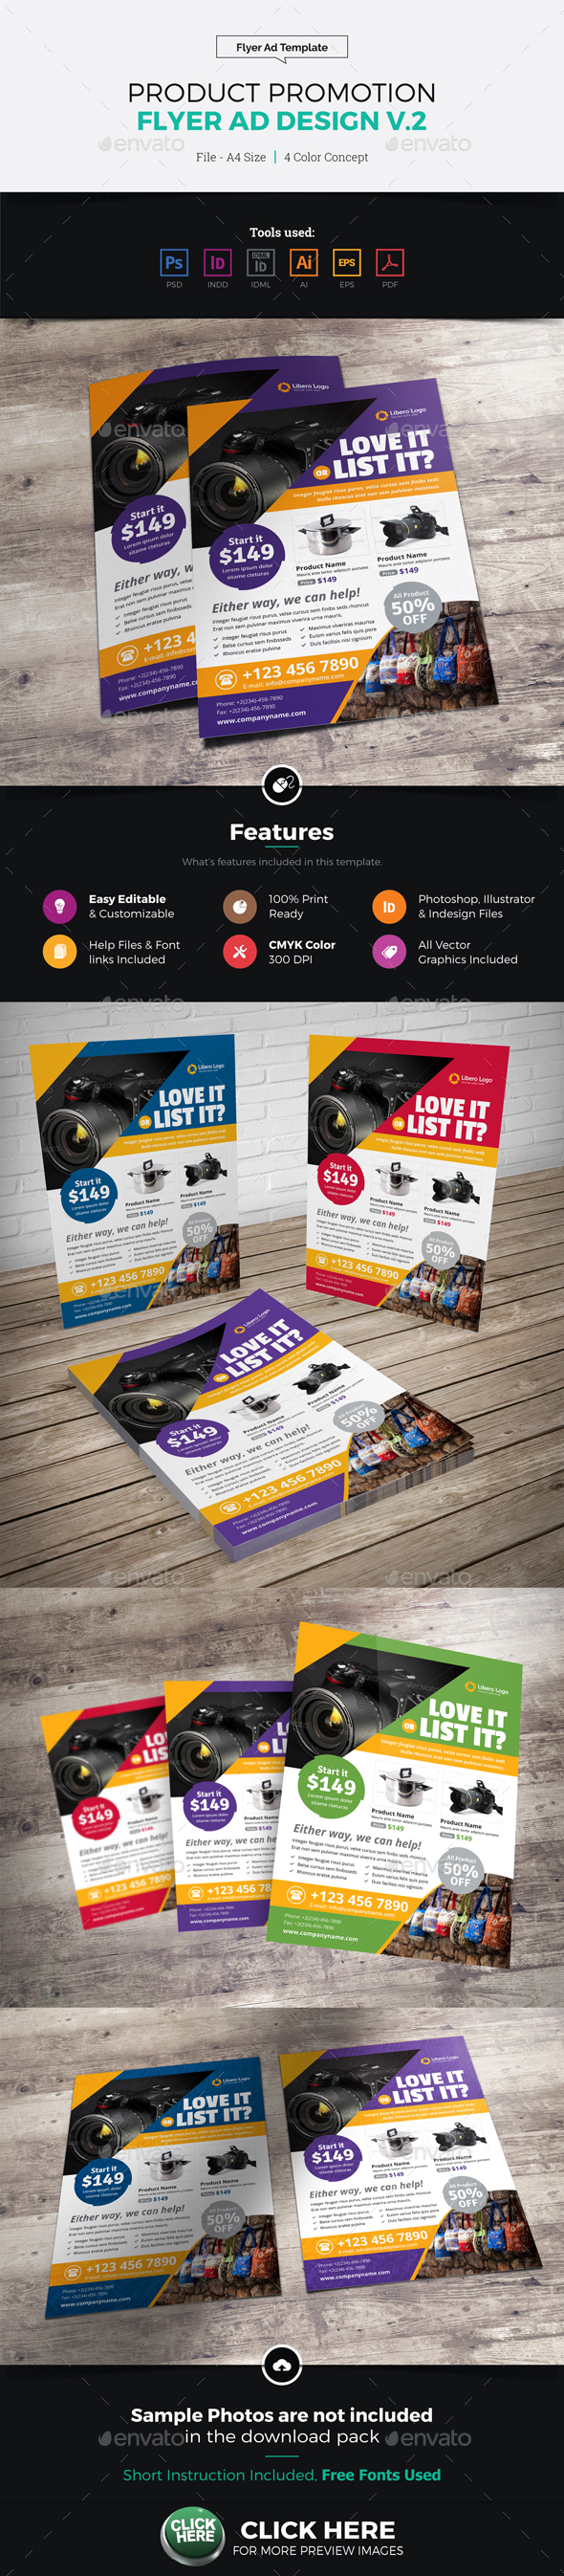 Product Sale Promotion Flyer Ad Design v2 - Commerce Flyers